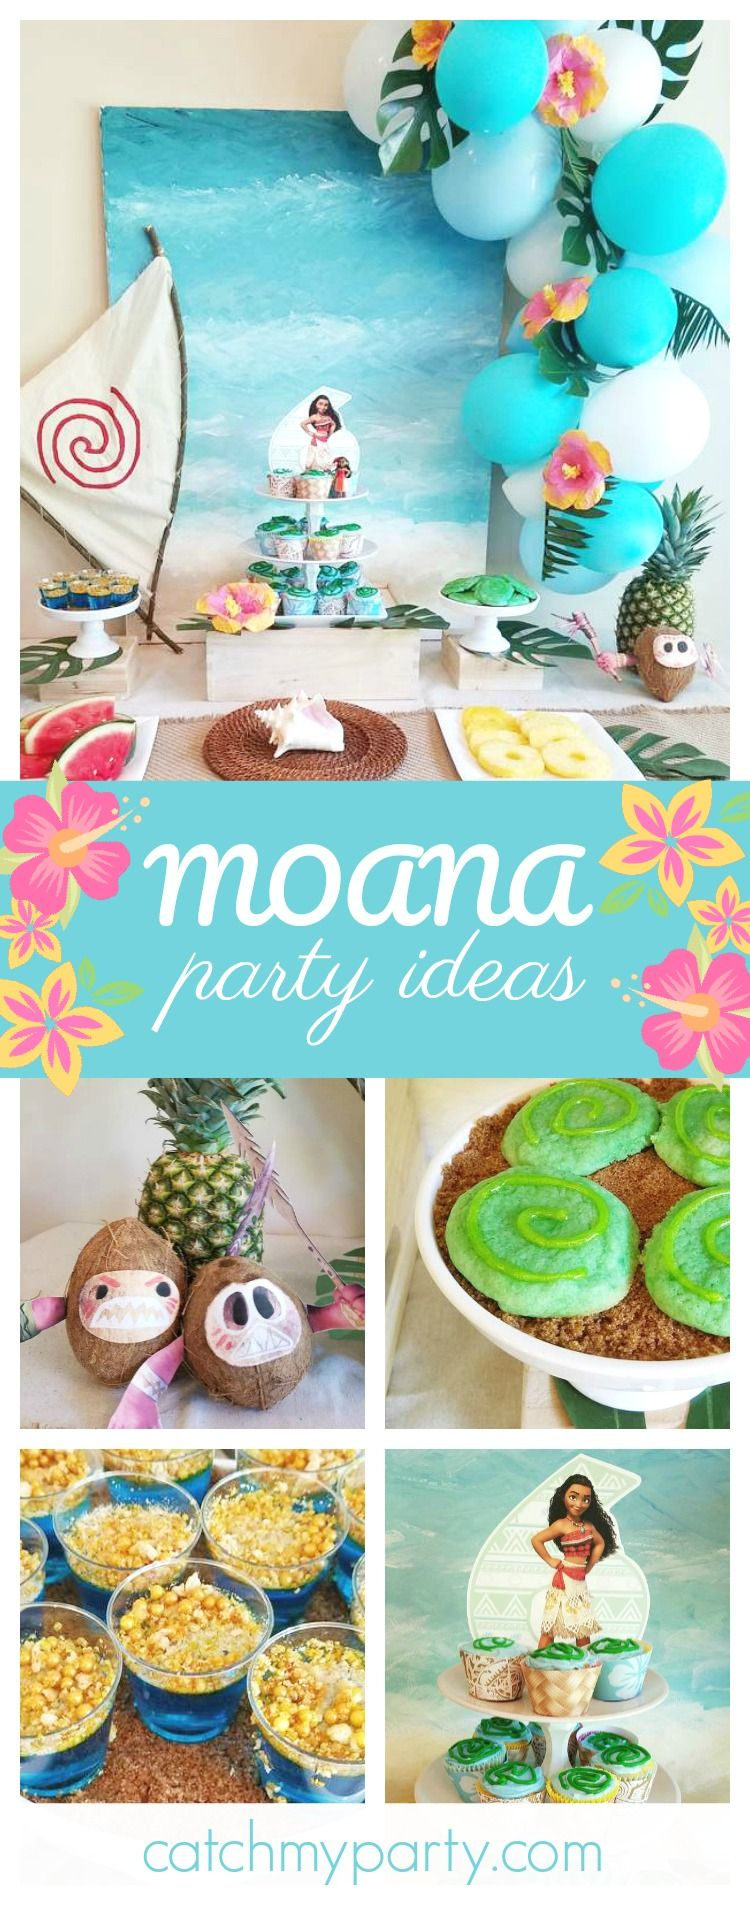 Donu0027t Miss This Gorgeous Tropical Moana Birthday Party. The Dessert Table  Is So